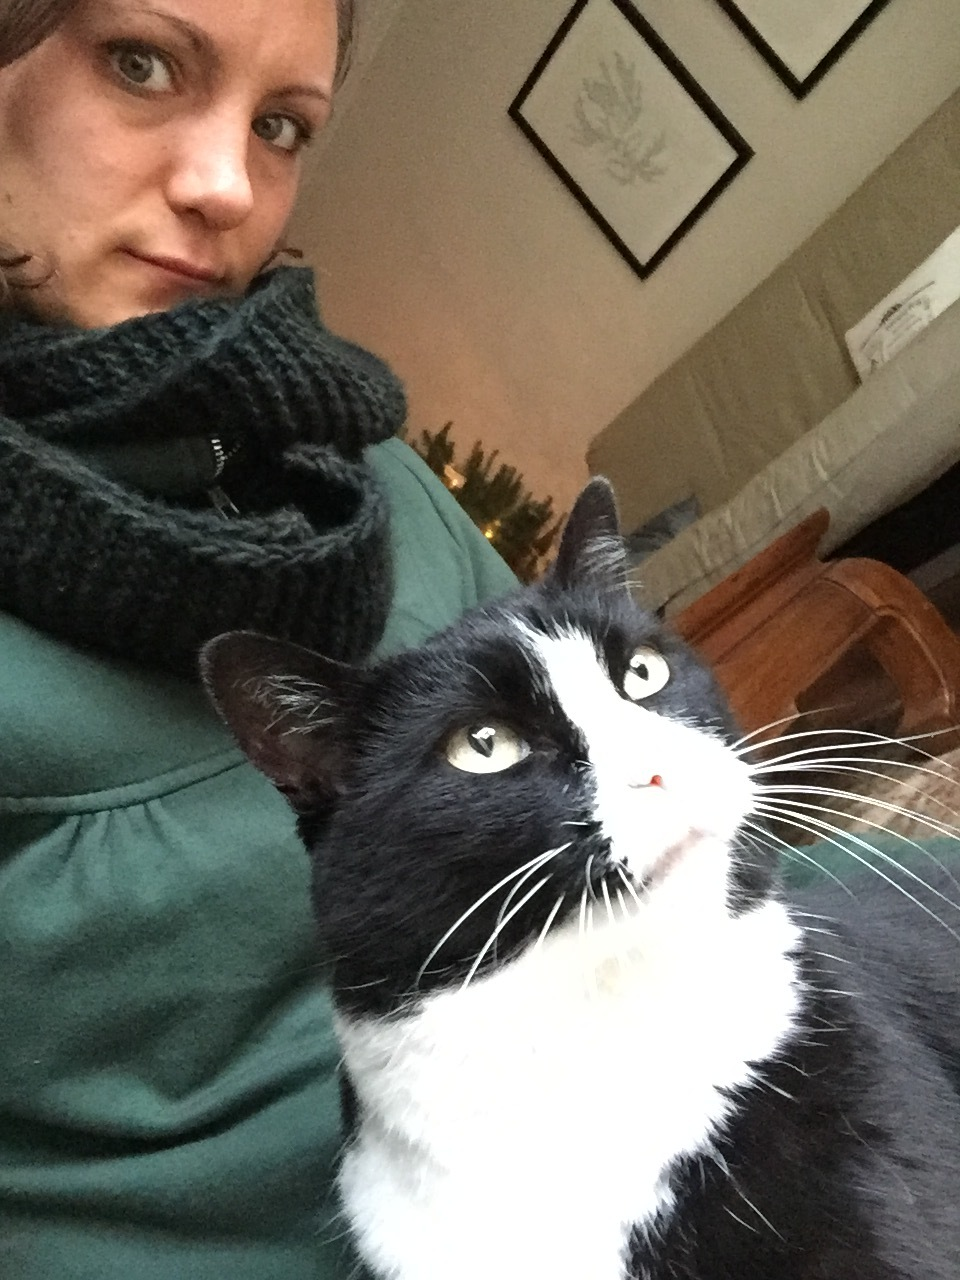 A post-meditation selfie with my kitty.